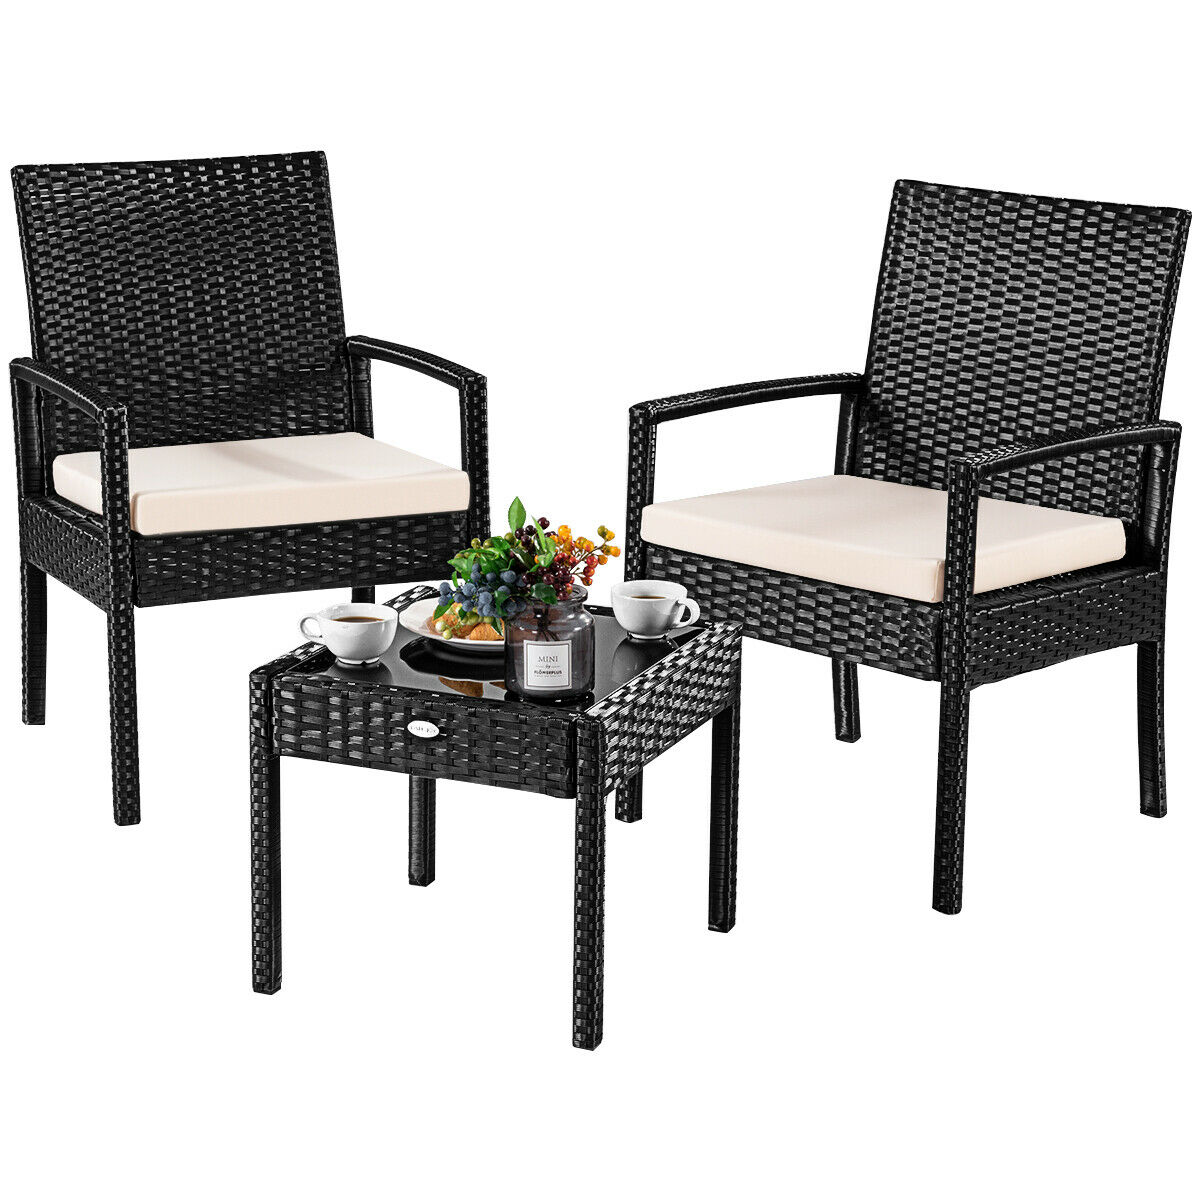 Patio Table Costway 3 Ps Outdoor Rattan Patio Furniture Set Backyard Garden Furniture Seat Cushioned